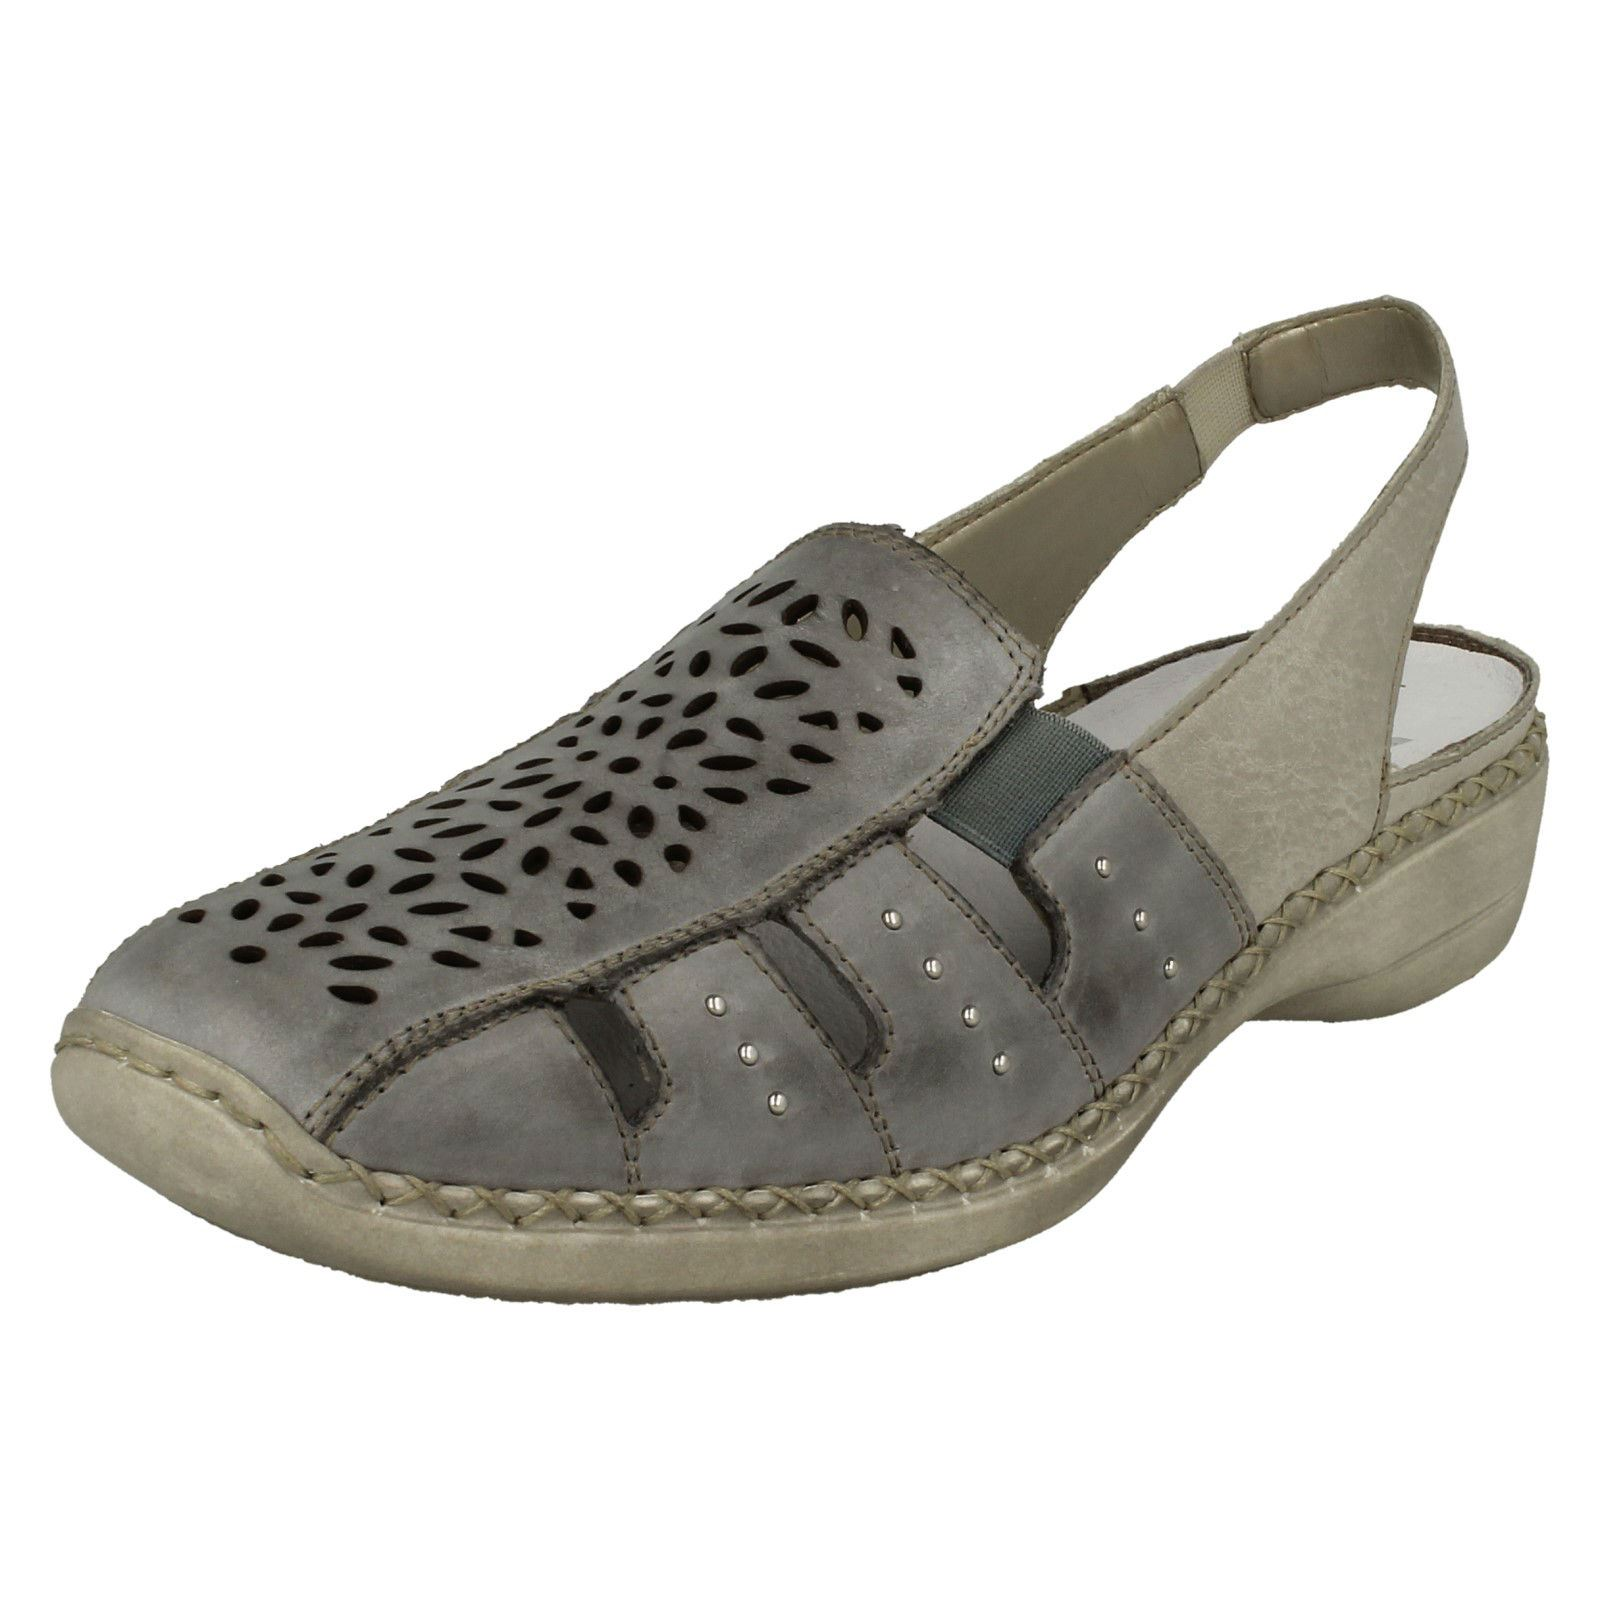 Details about Rieker 41390 62 Ladies Womens Leather Wedge Slingback Summer Shoes Taupe Biege